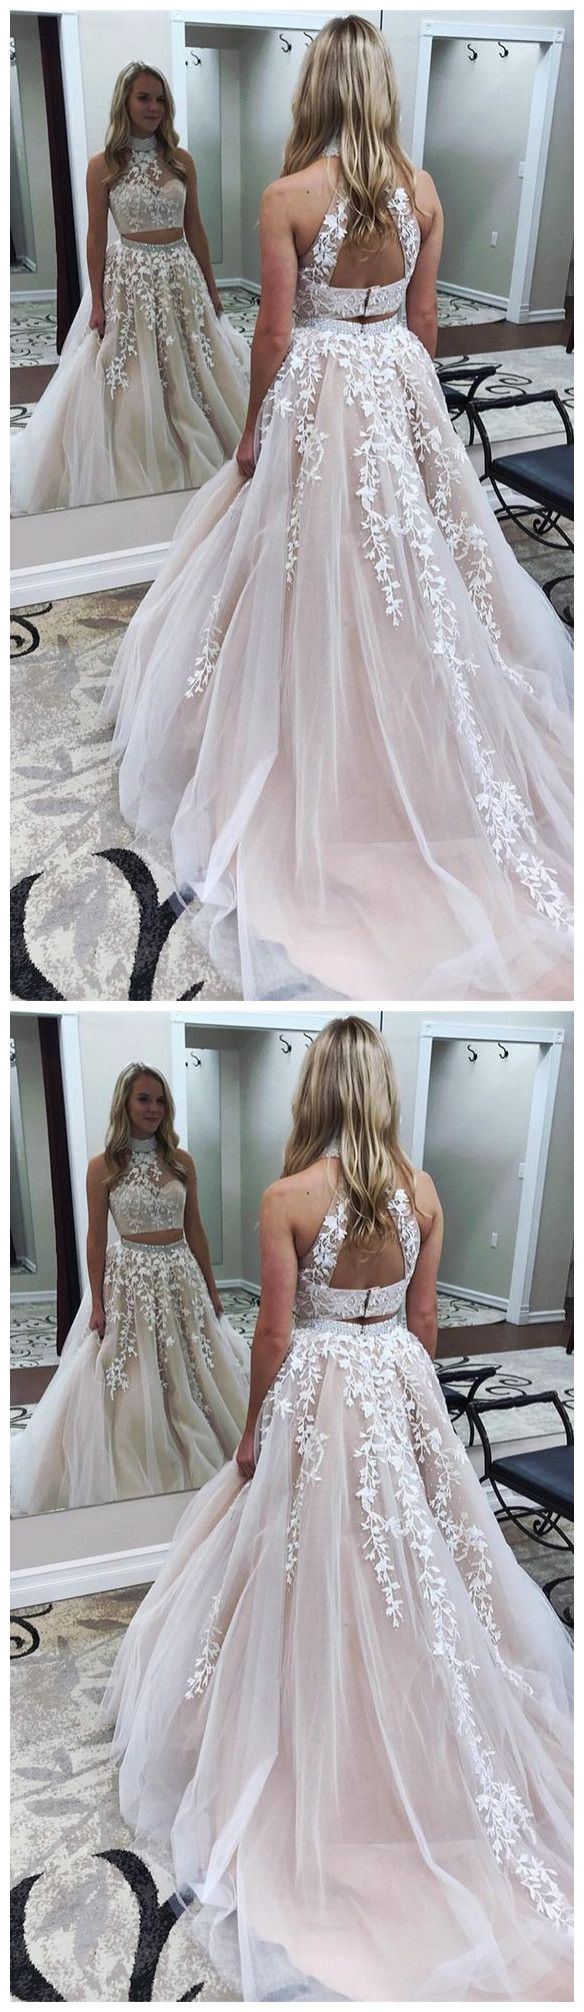 best prom dresses images on pinterest prom dresses ball gown